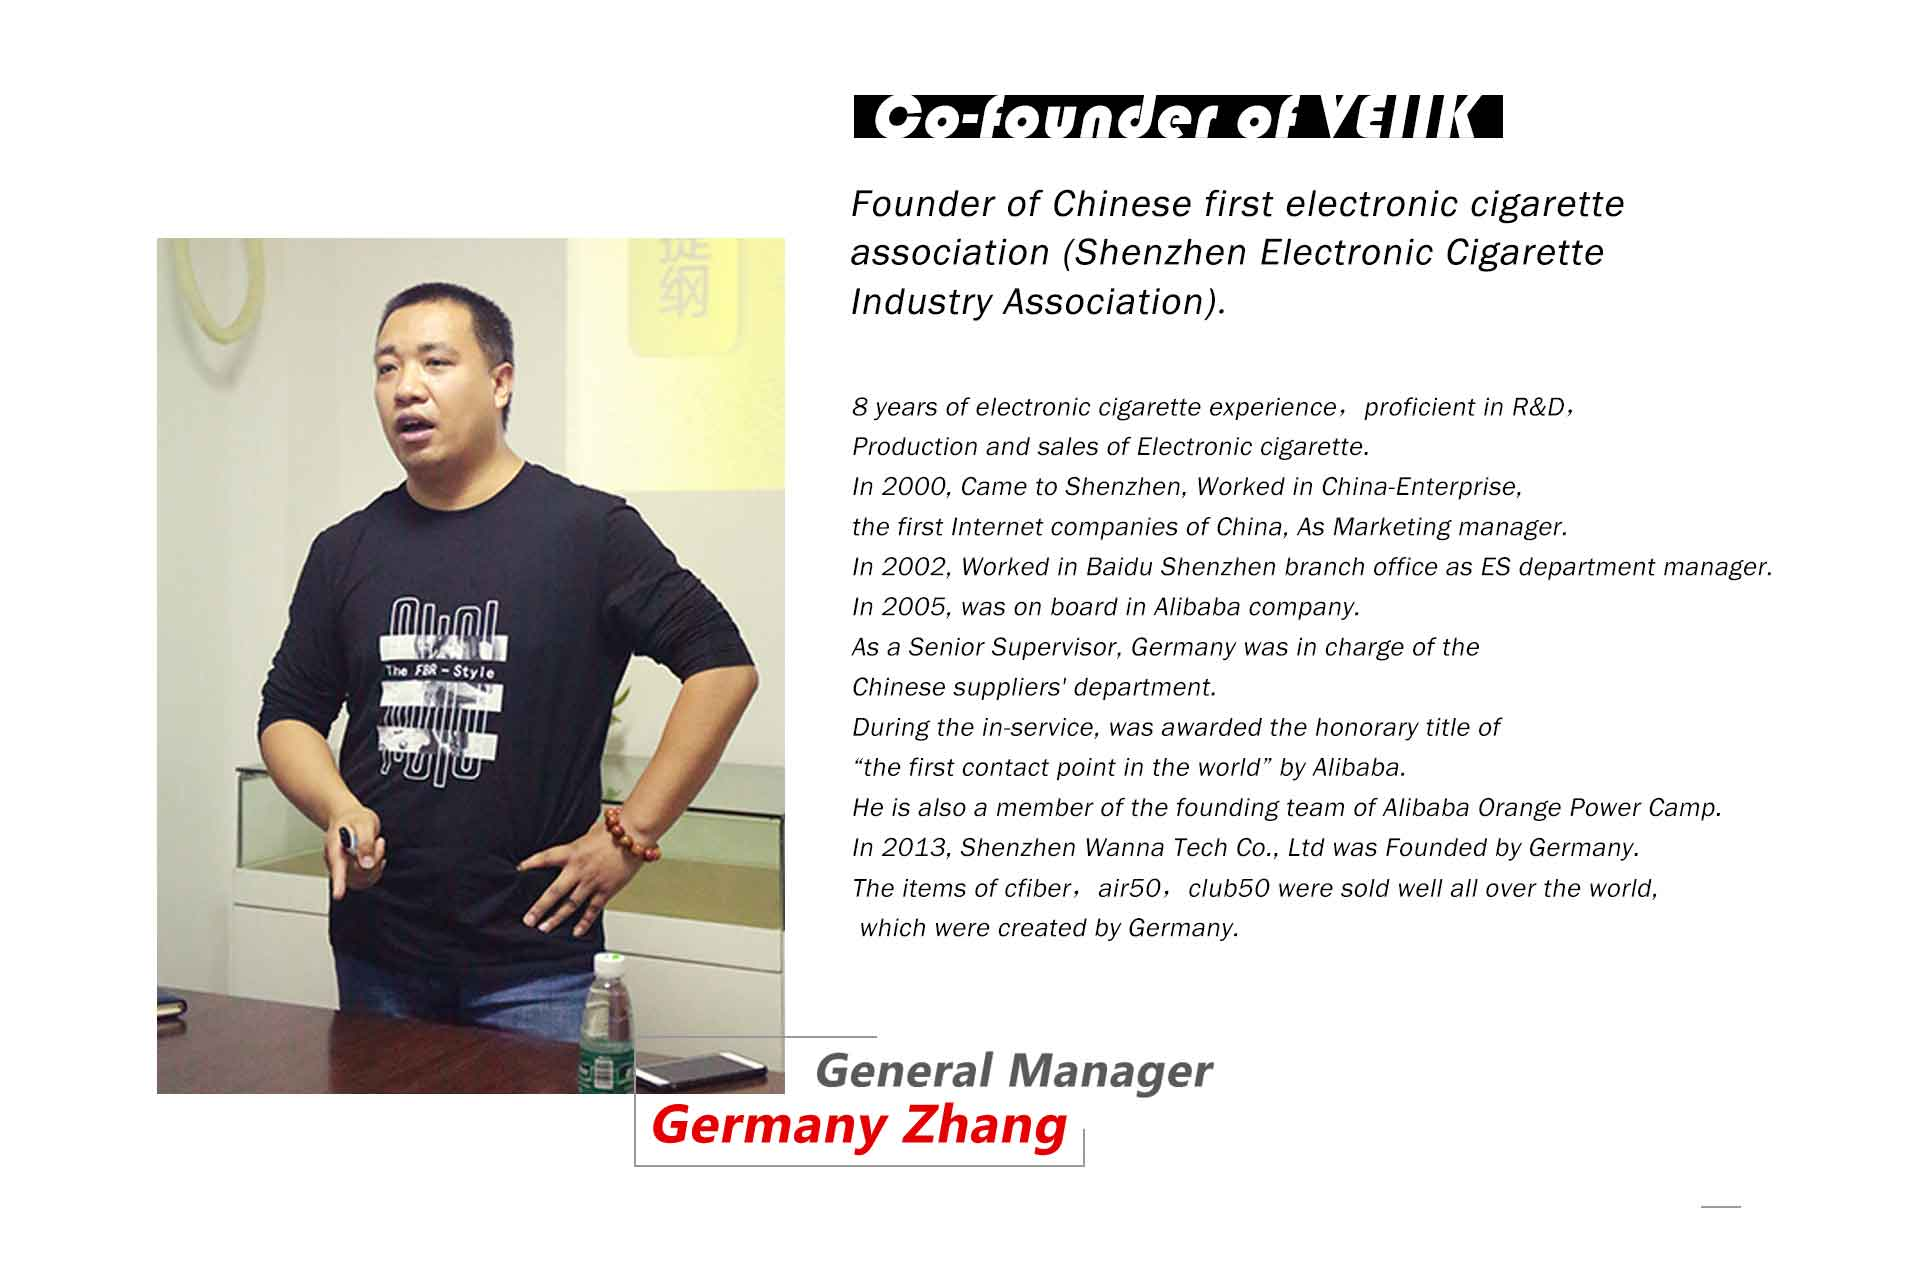 Veiik general manager Germany zhang